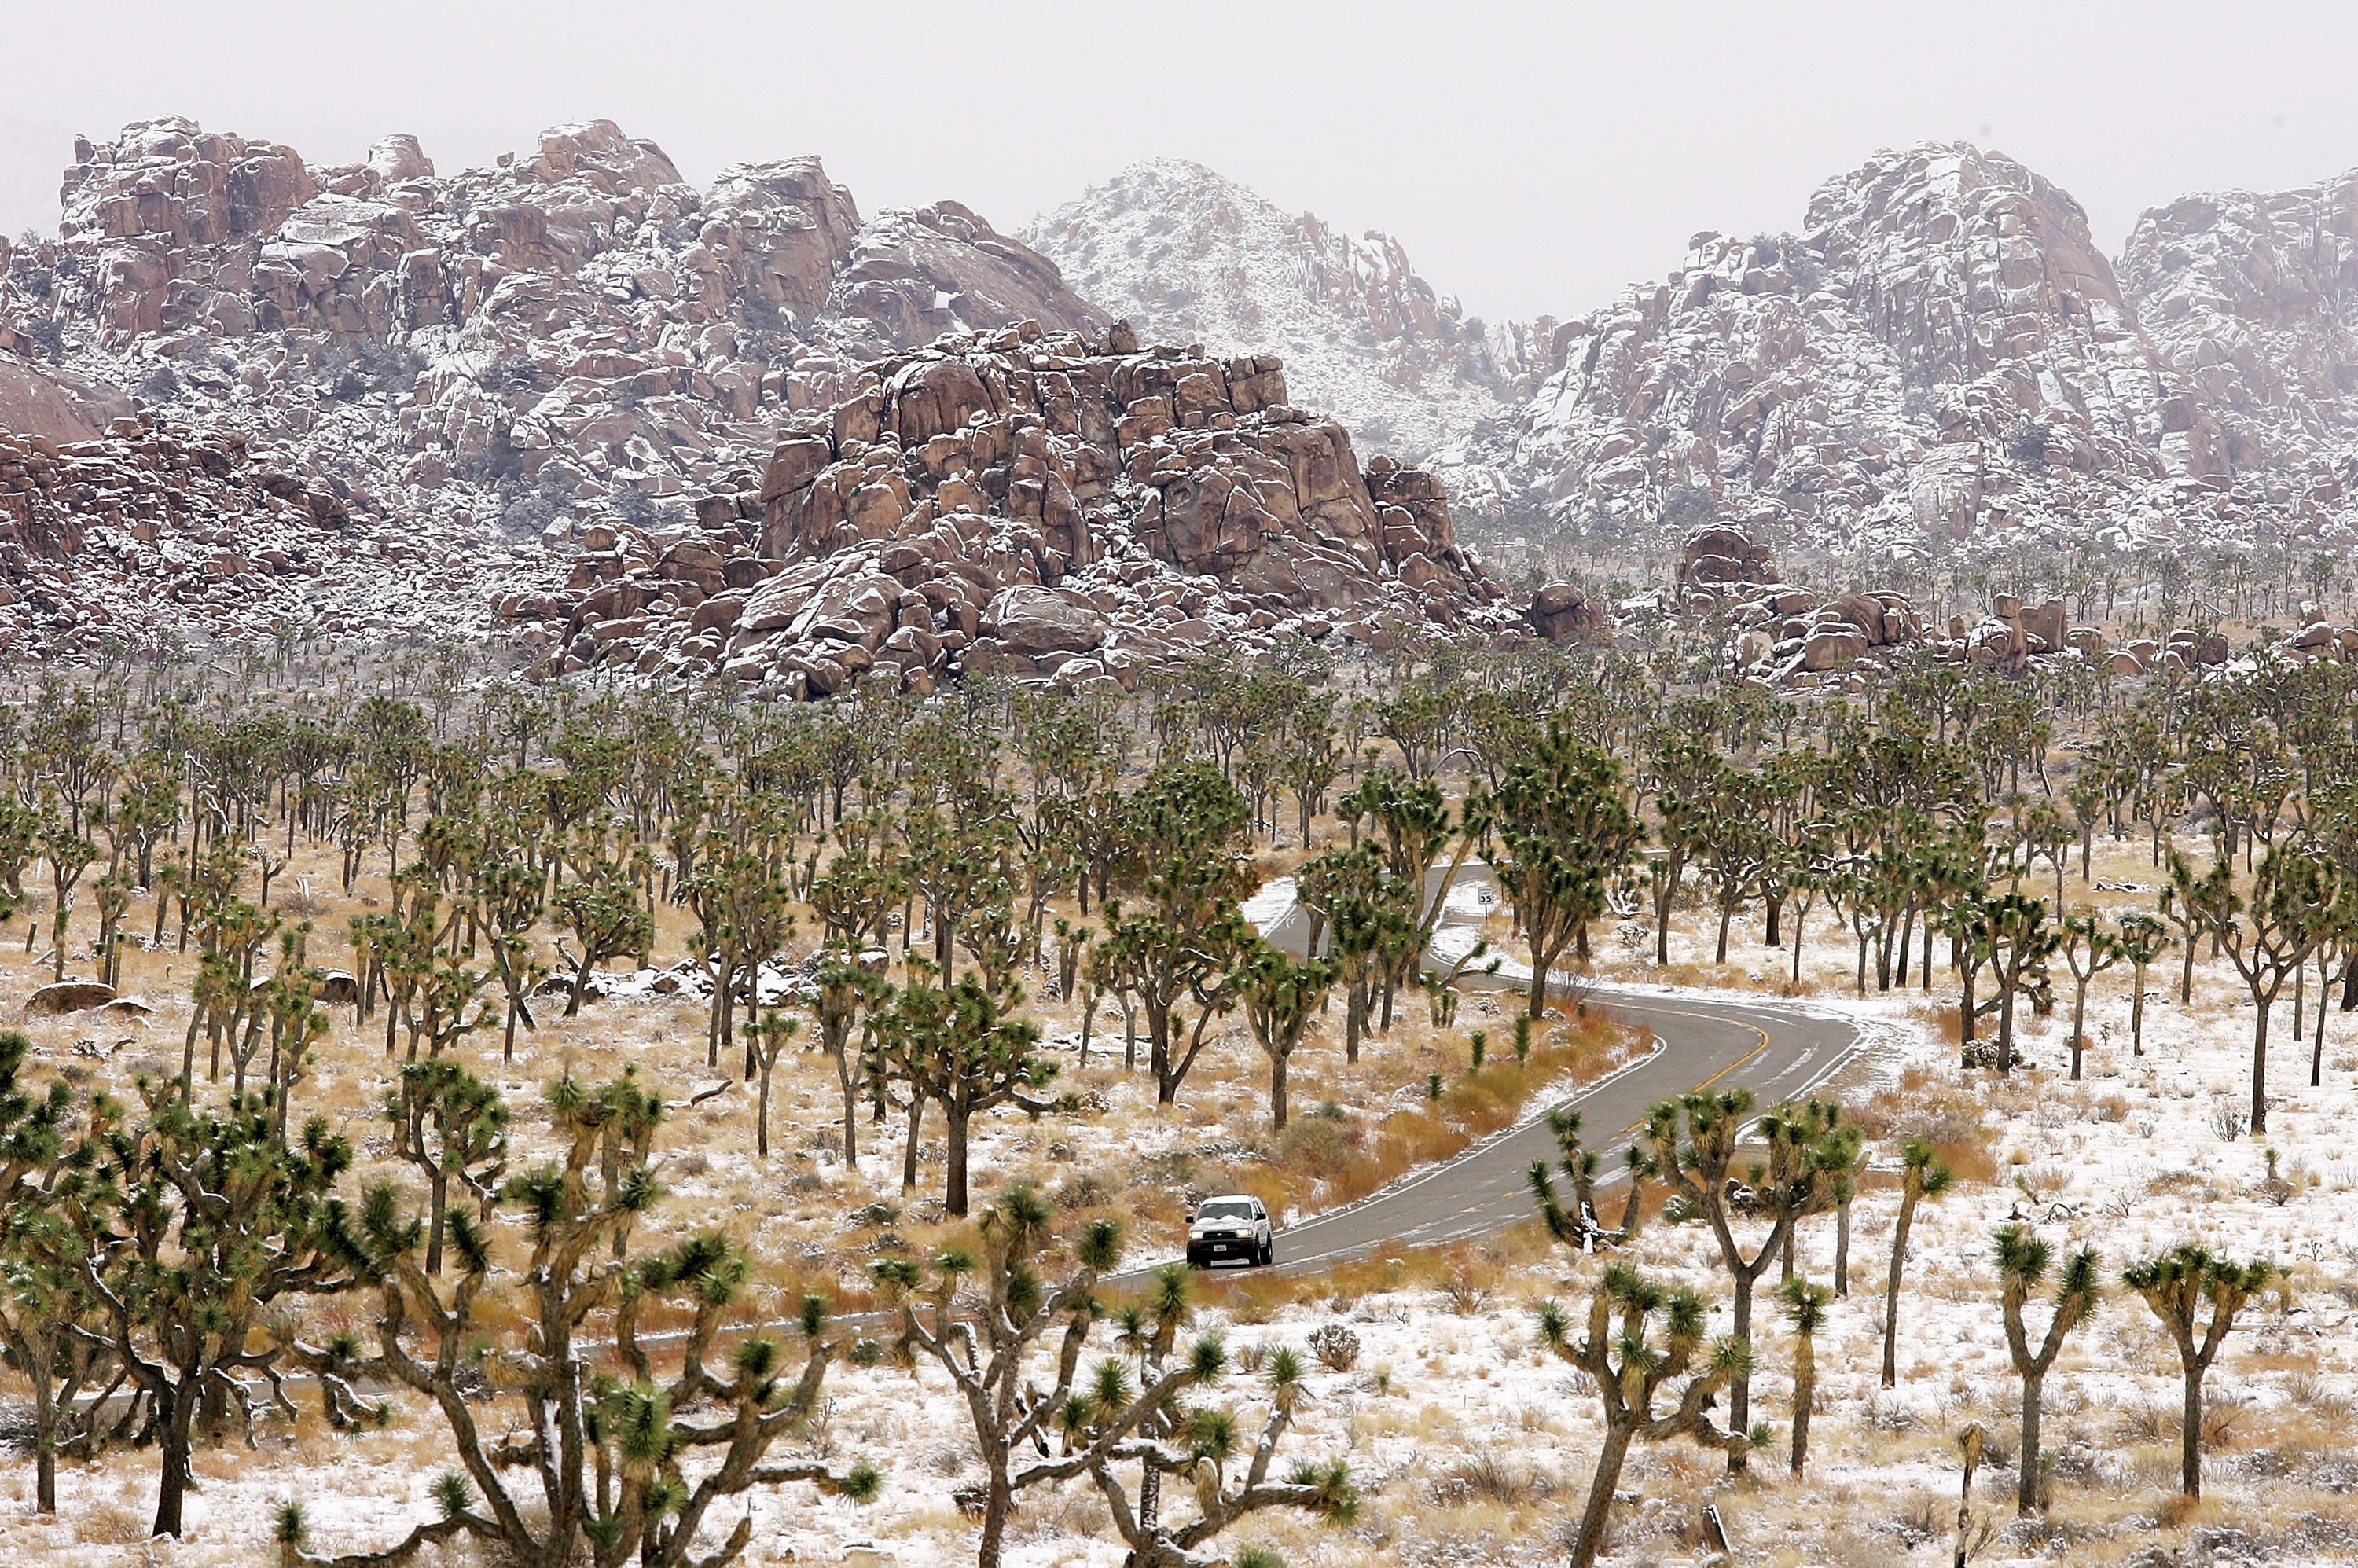 Joshua Tree National Park Looks Insanely Beautiful After A